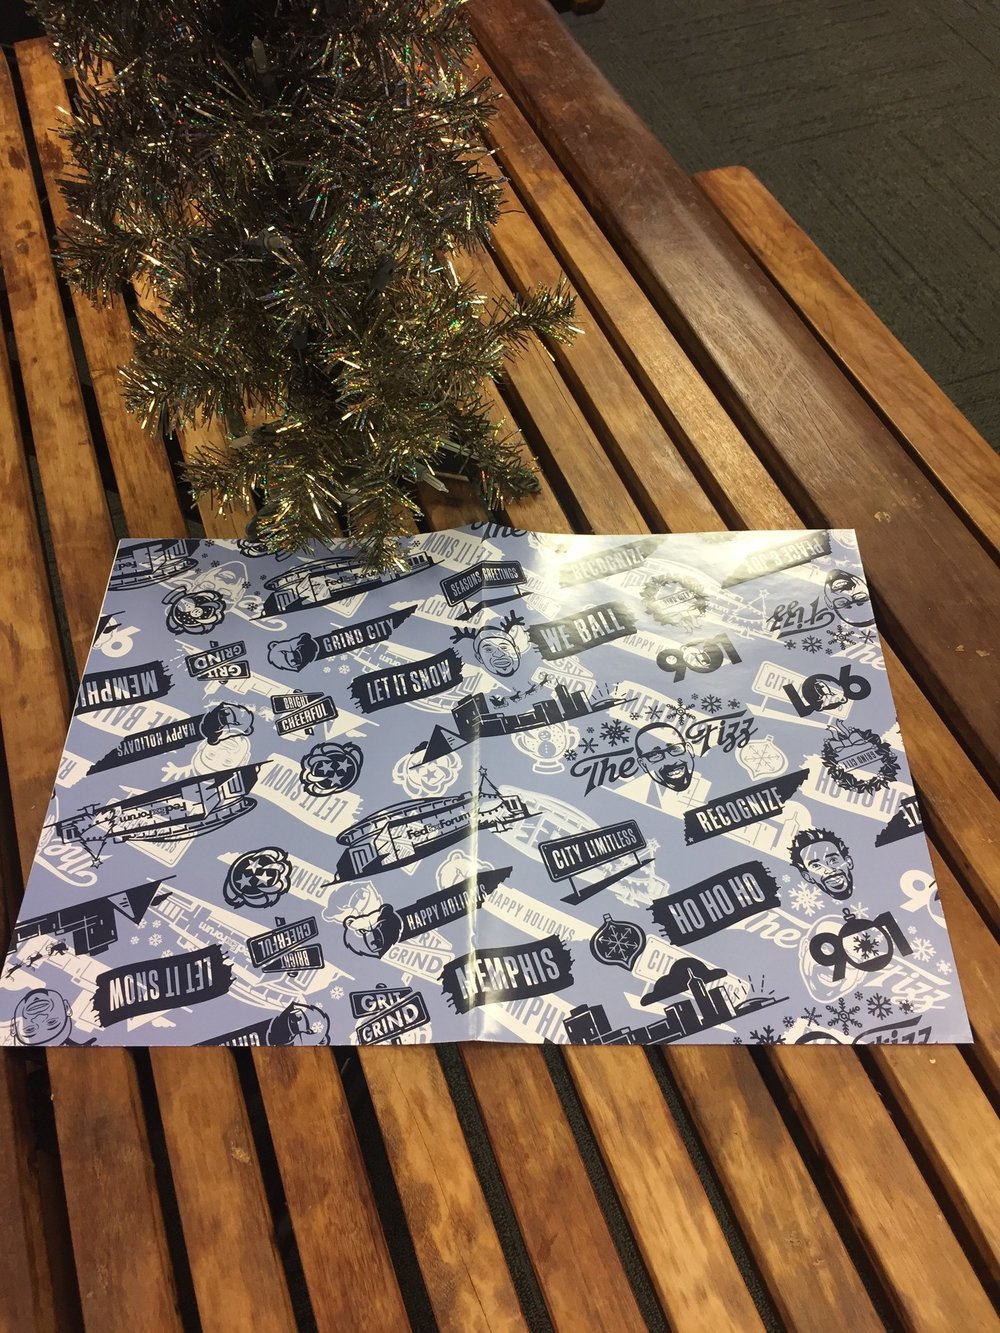 The Memphis Grizzlies gave away this wrapping paper before their 12/20 game against the Celtics. Photo via @memgrizz Twitter.